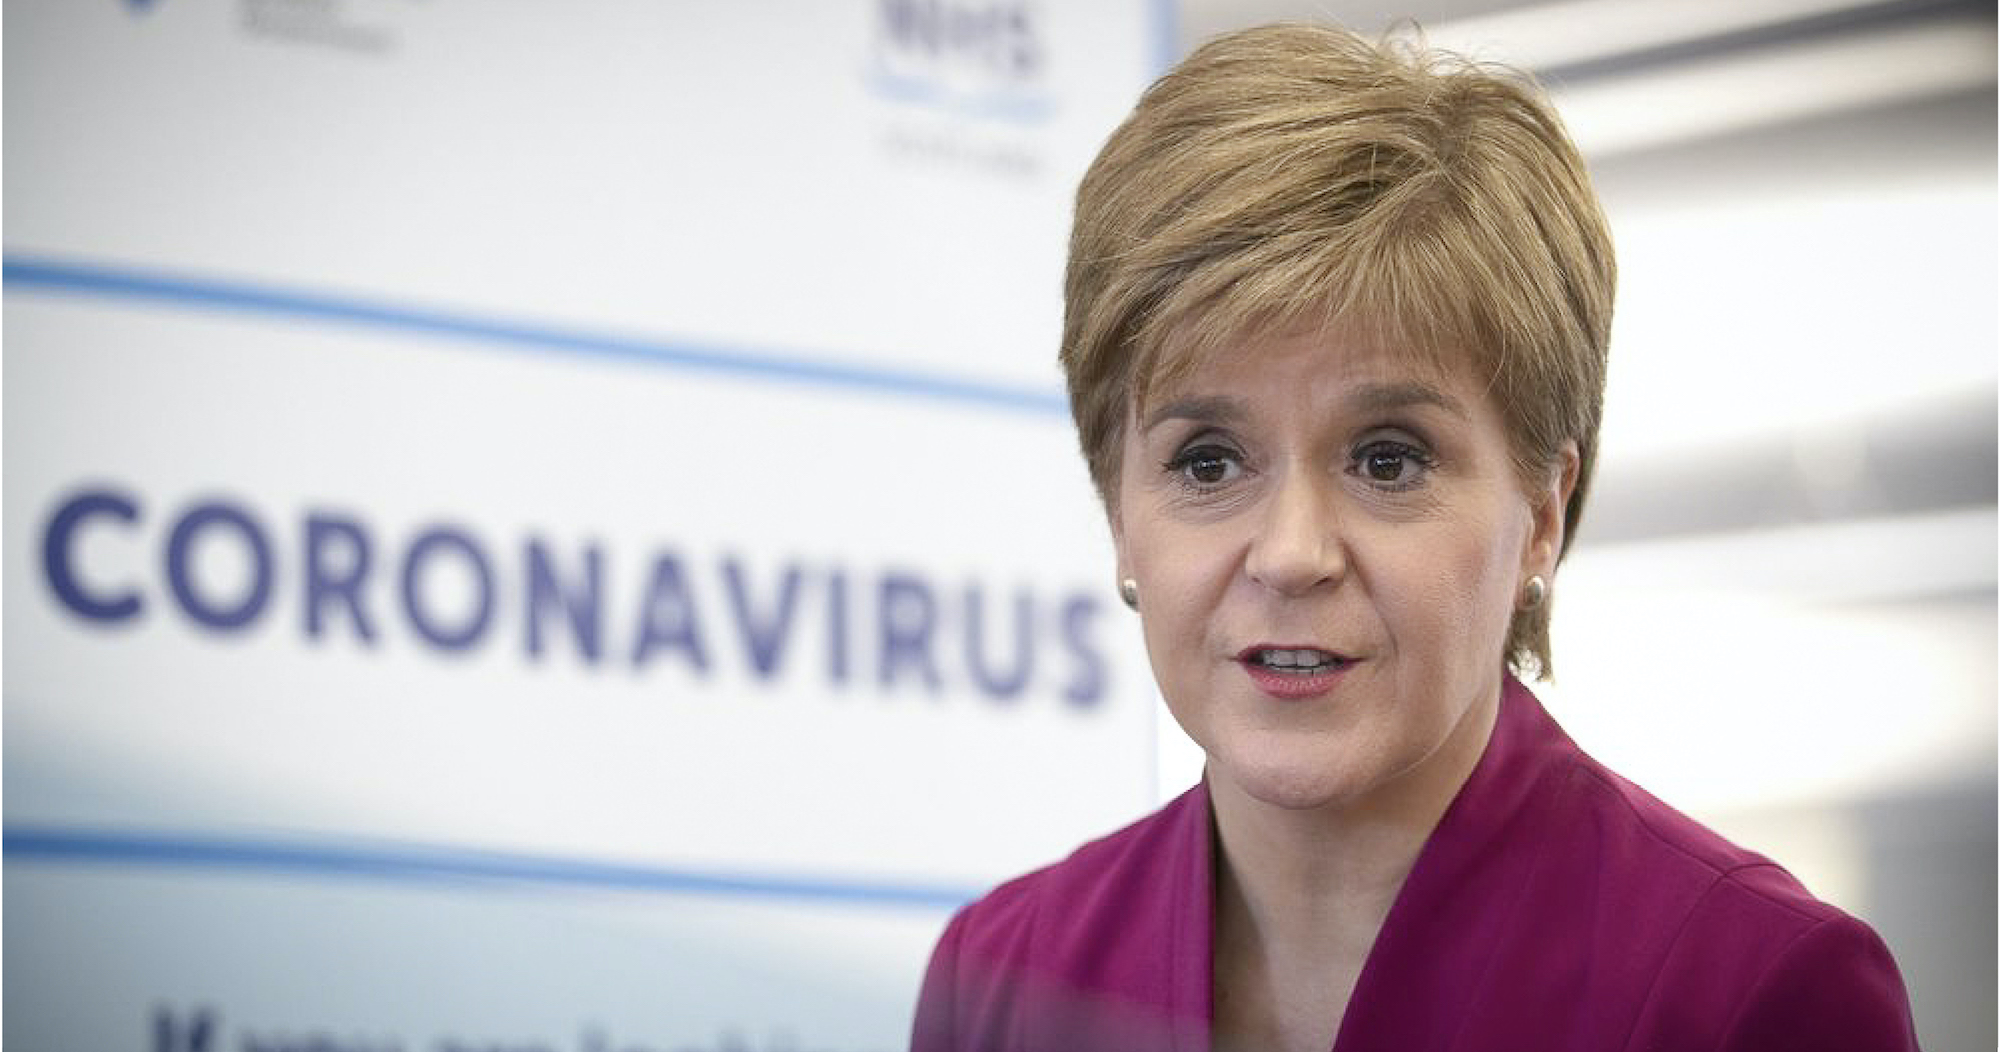 First Minister of Scotland Nicola Sturgeon in front of a NHS Scotland Coronavirus sign